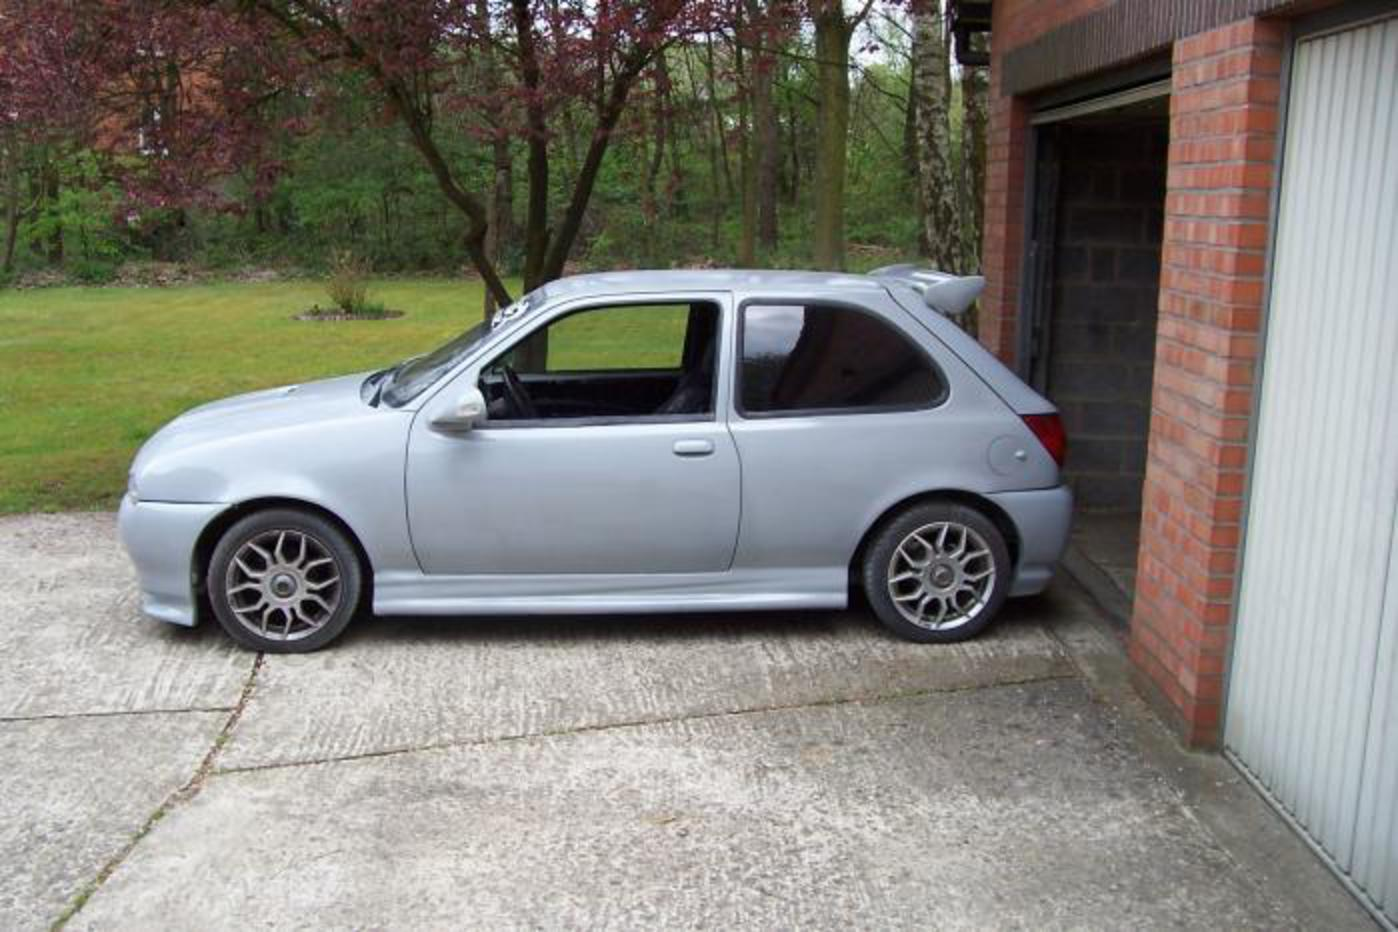 Mazda 121 1.3. Author: ford. Date: 01.11.2012. Views: 28925